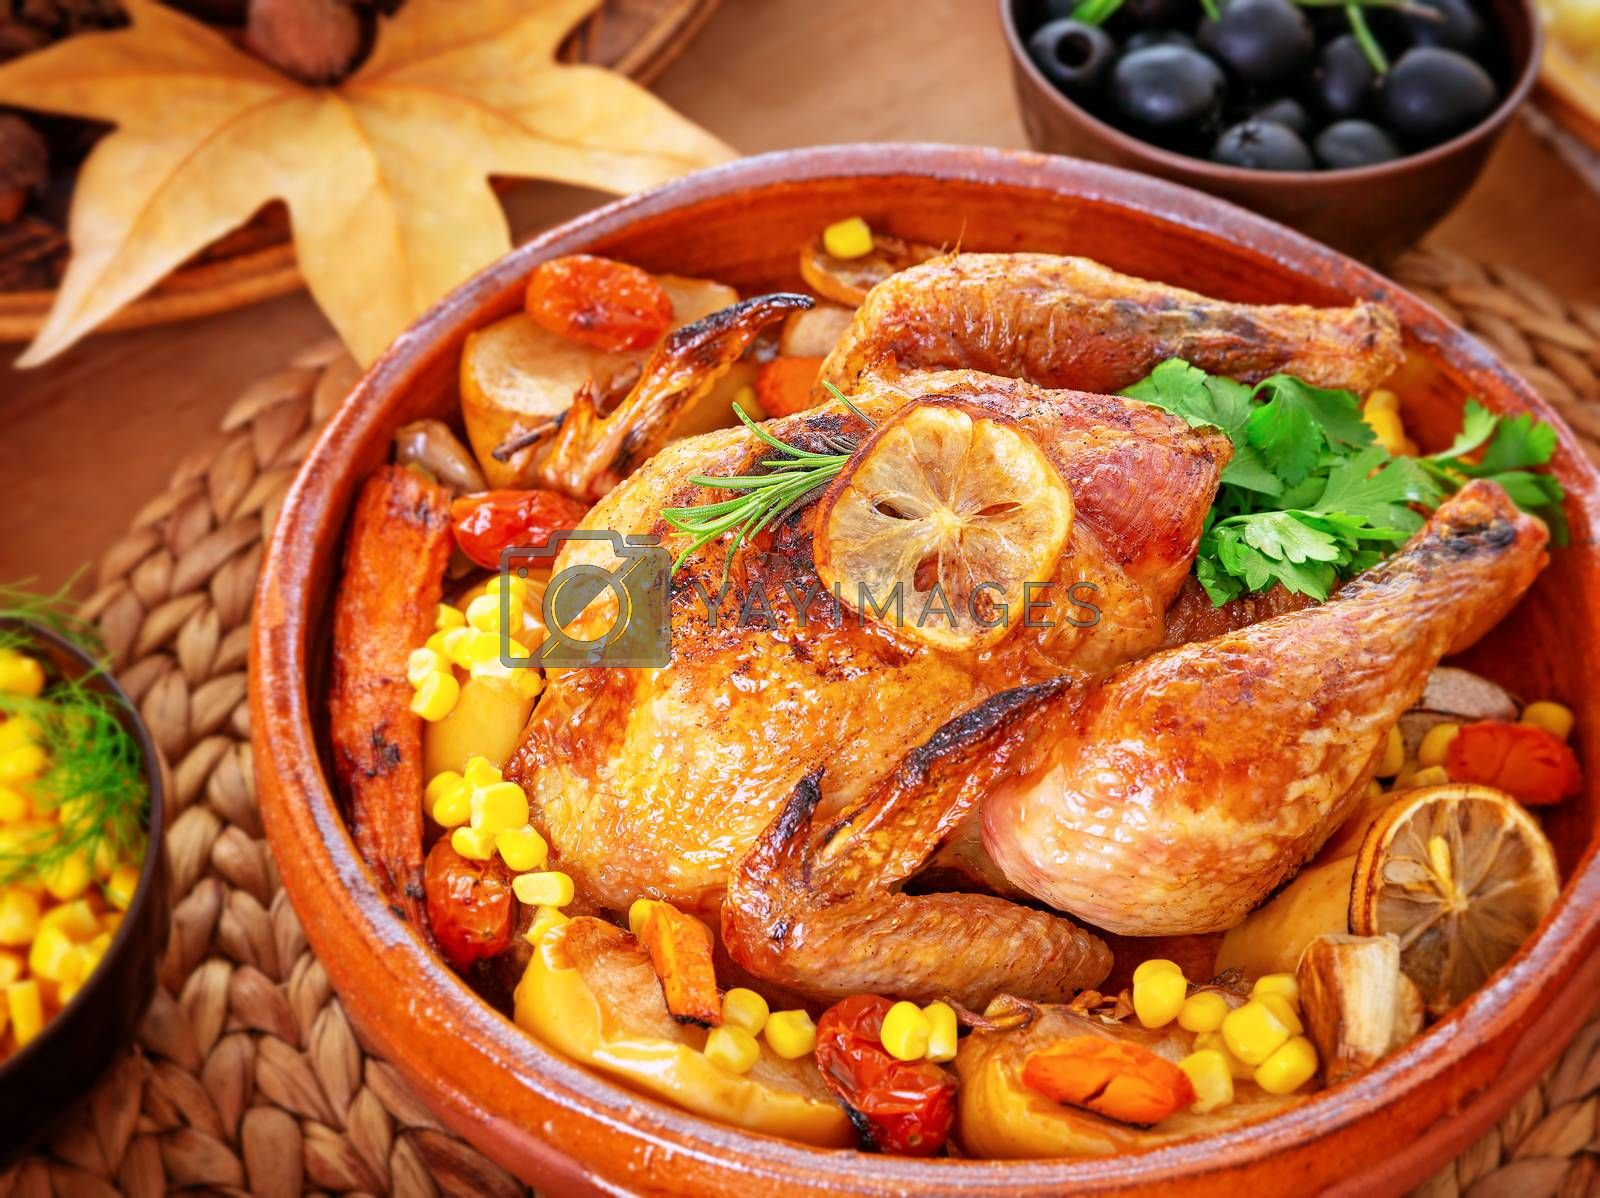 Beautiful festive food still life, tasty crispy chicken with baked vegetables on the centerpiece of table, traditional family dinner in Thanksgiving day